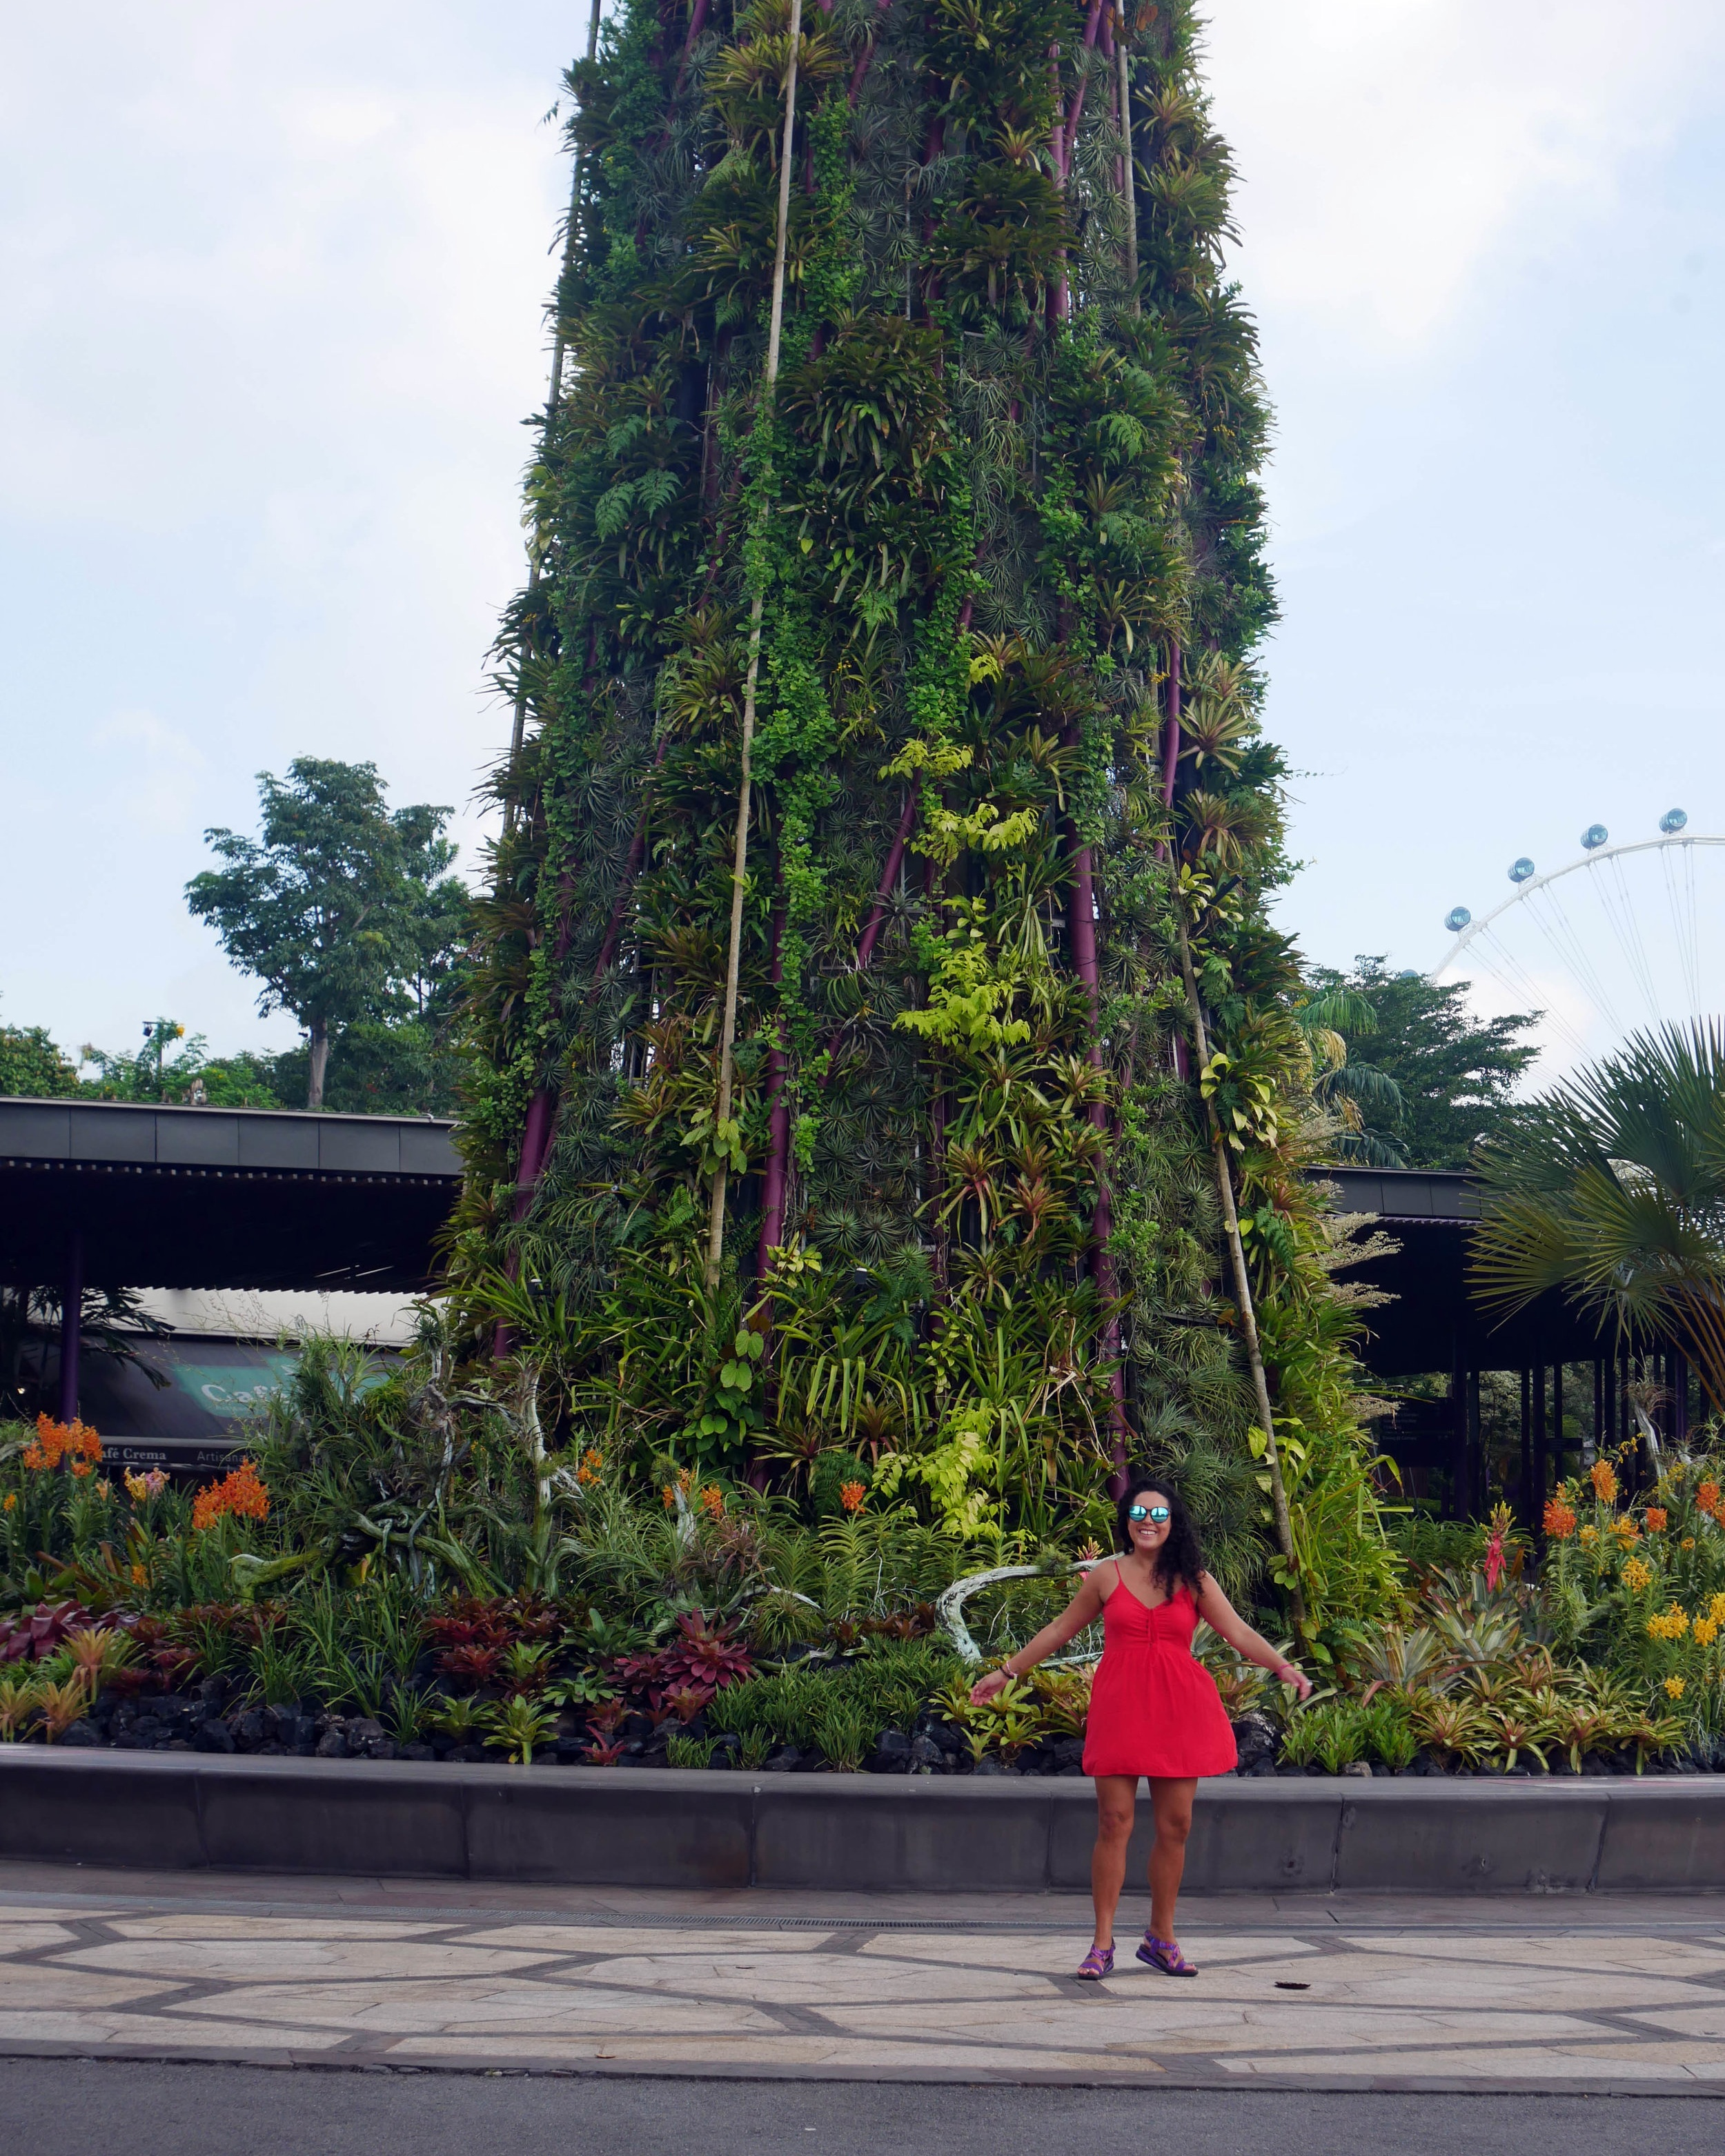 Swirling around in Gardens By Bay, Singapore